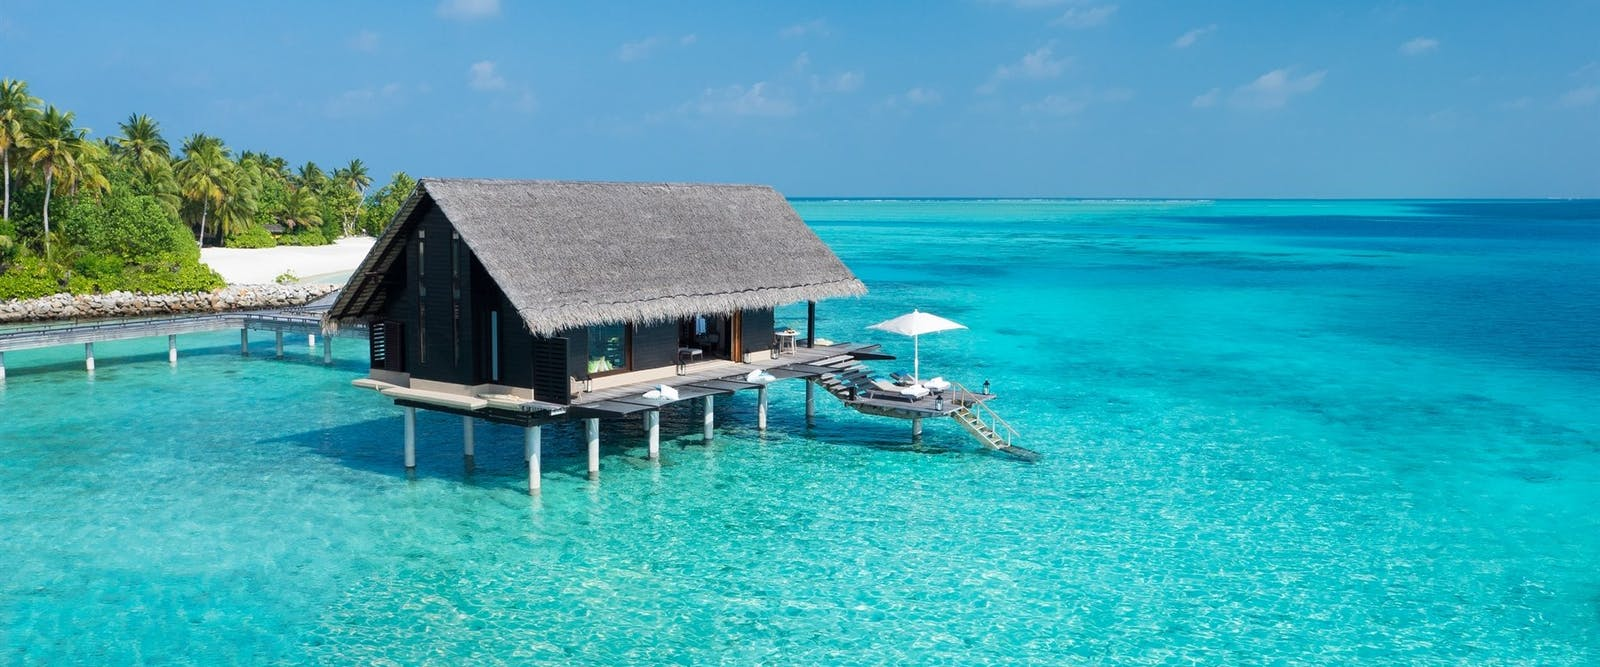 Water Villa at One&Only Reethi Rah, Maldives, Indian Ocean